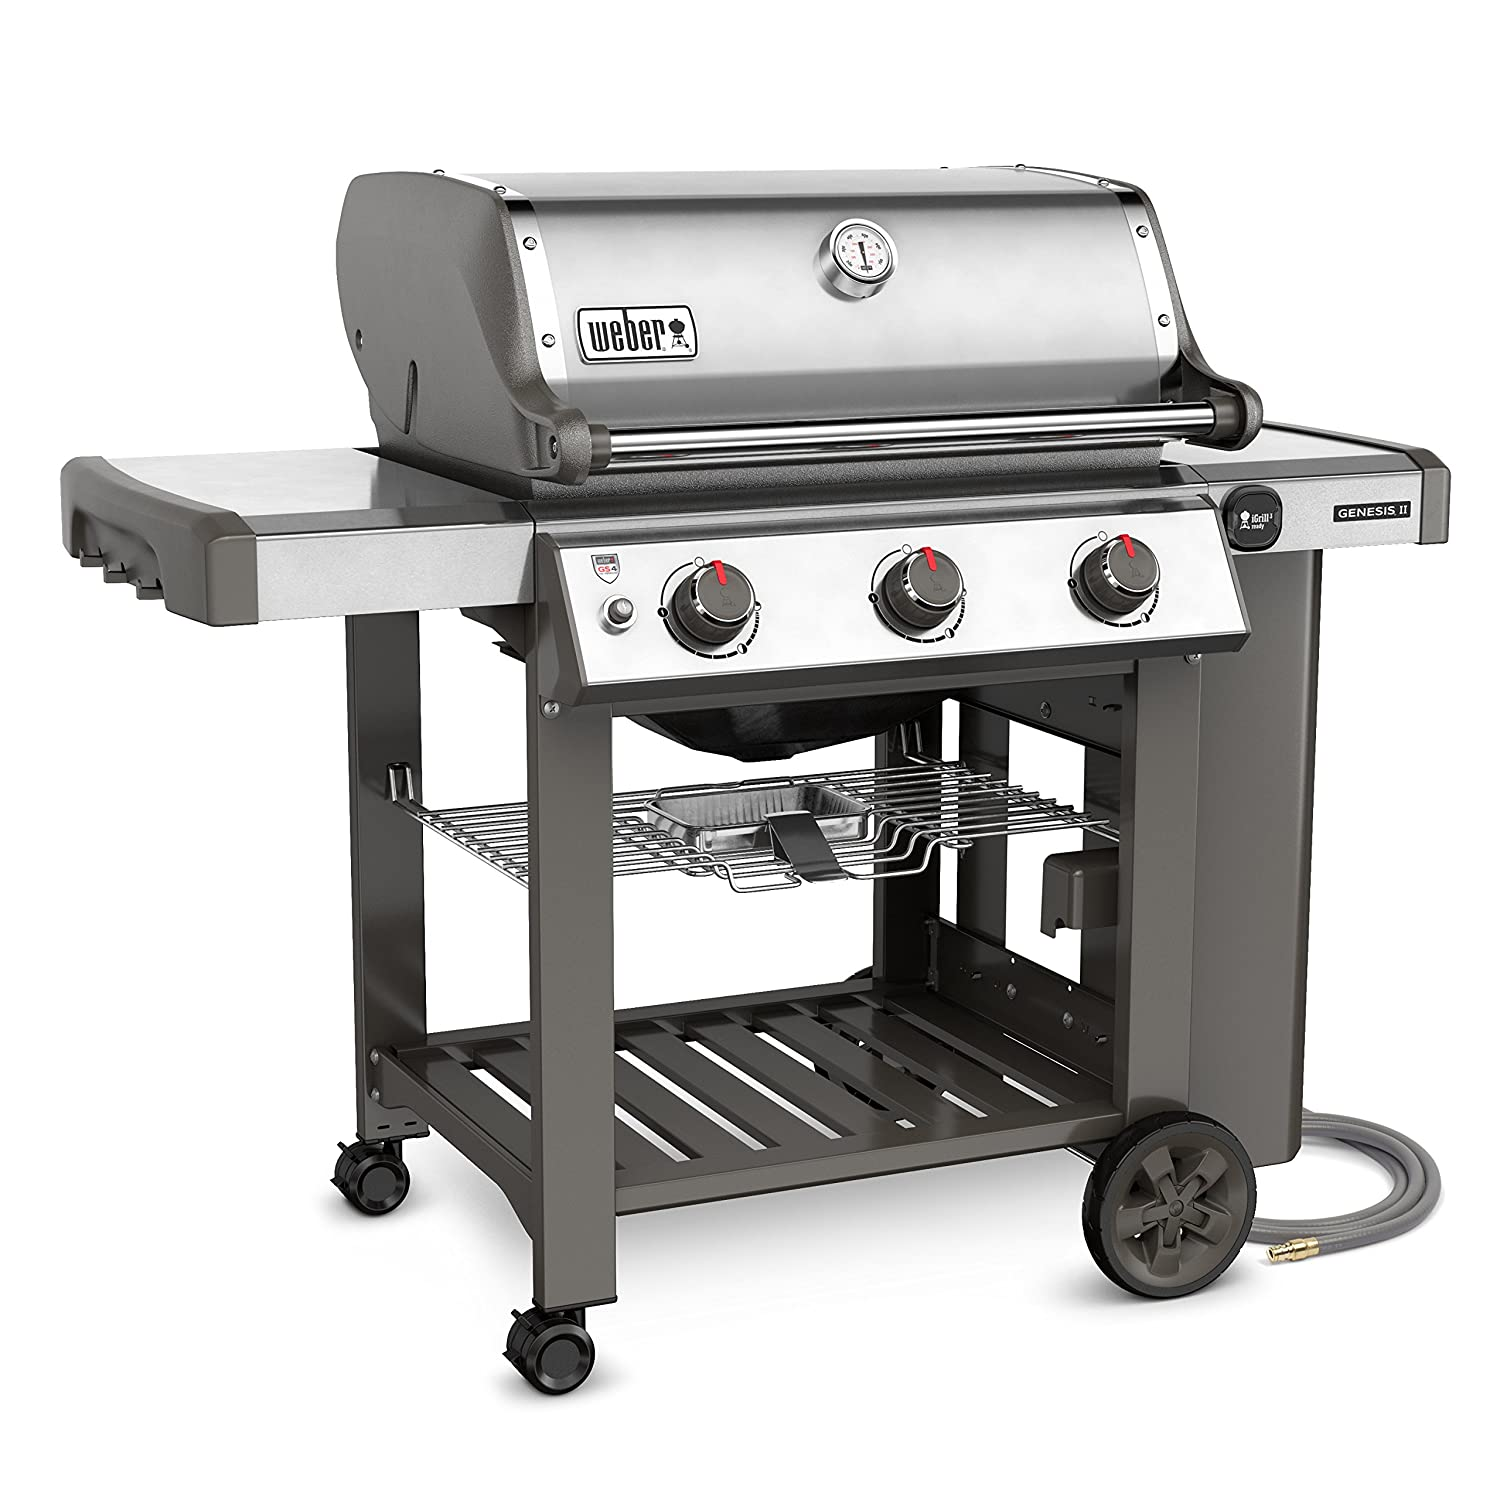 Amazoncom Weber Genesis II S Natural Gas Grill - Abt weber grill